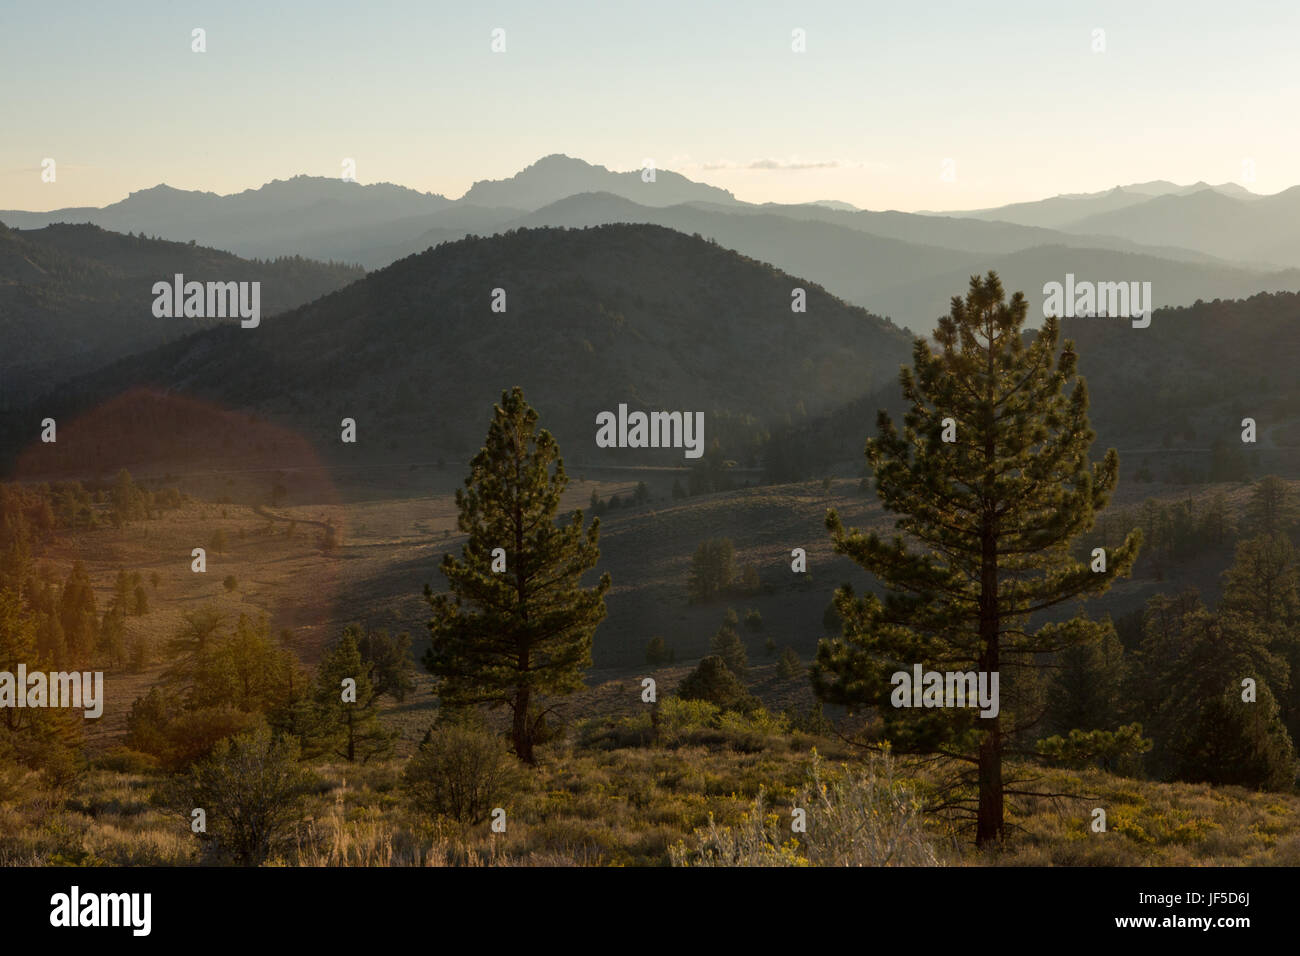 A scenic view of mountains forested in evergreen trees in the El Dorado National Forest. - Stock Image